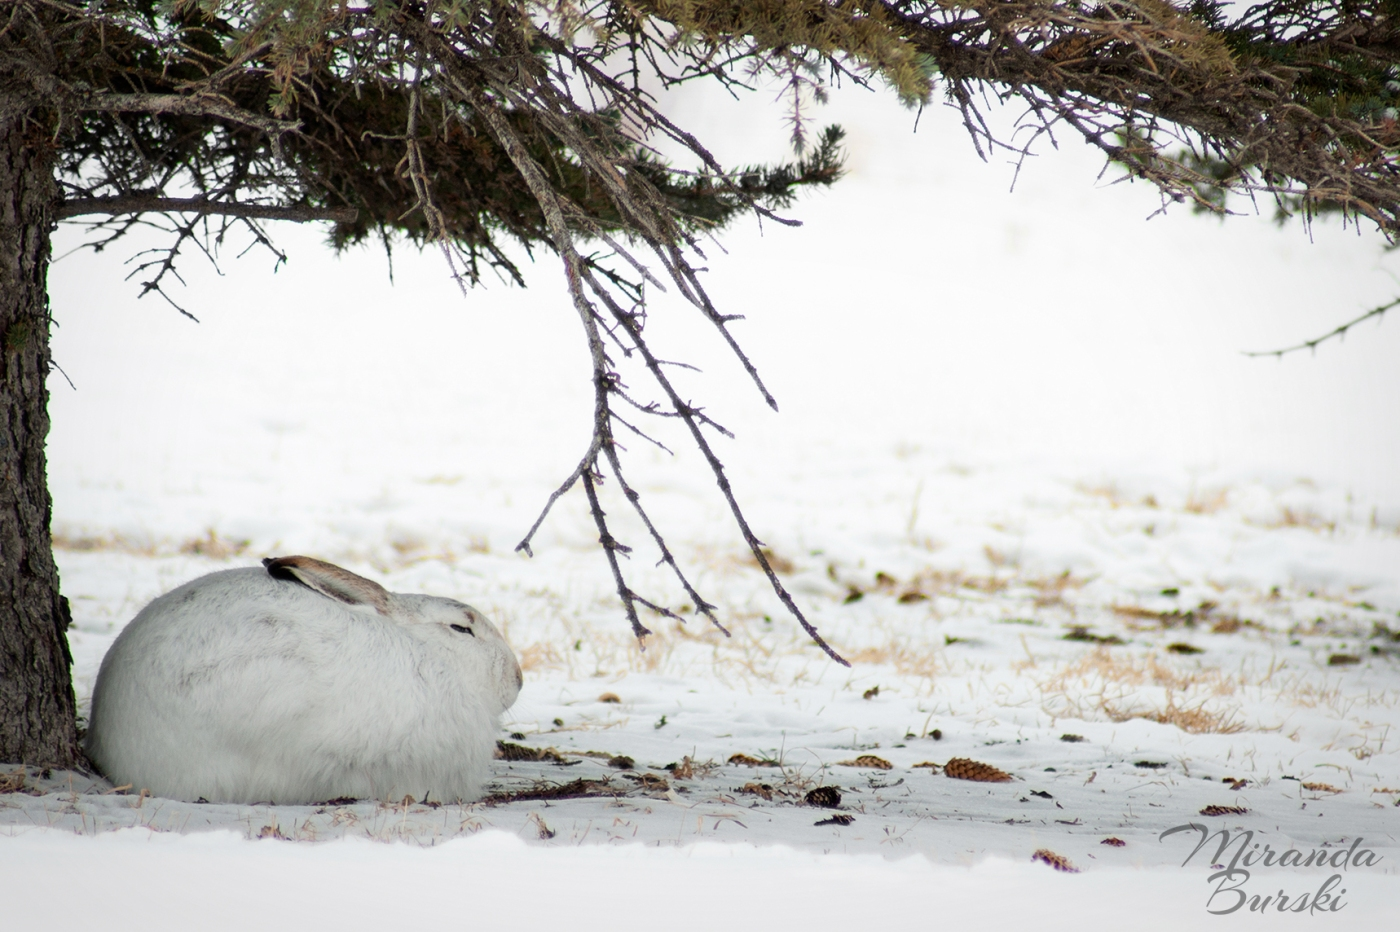 A white rabbit napping under a tree, with snow in the background.